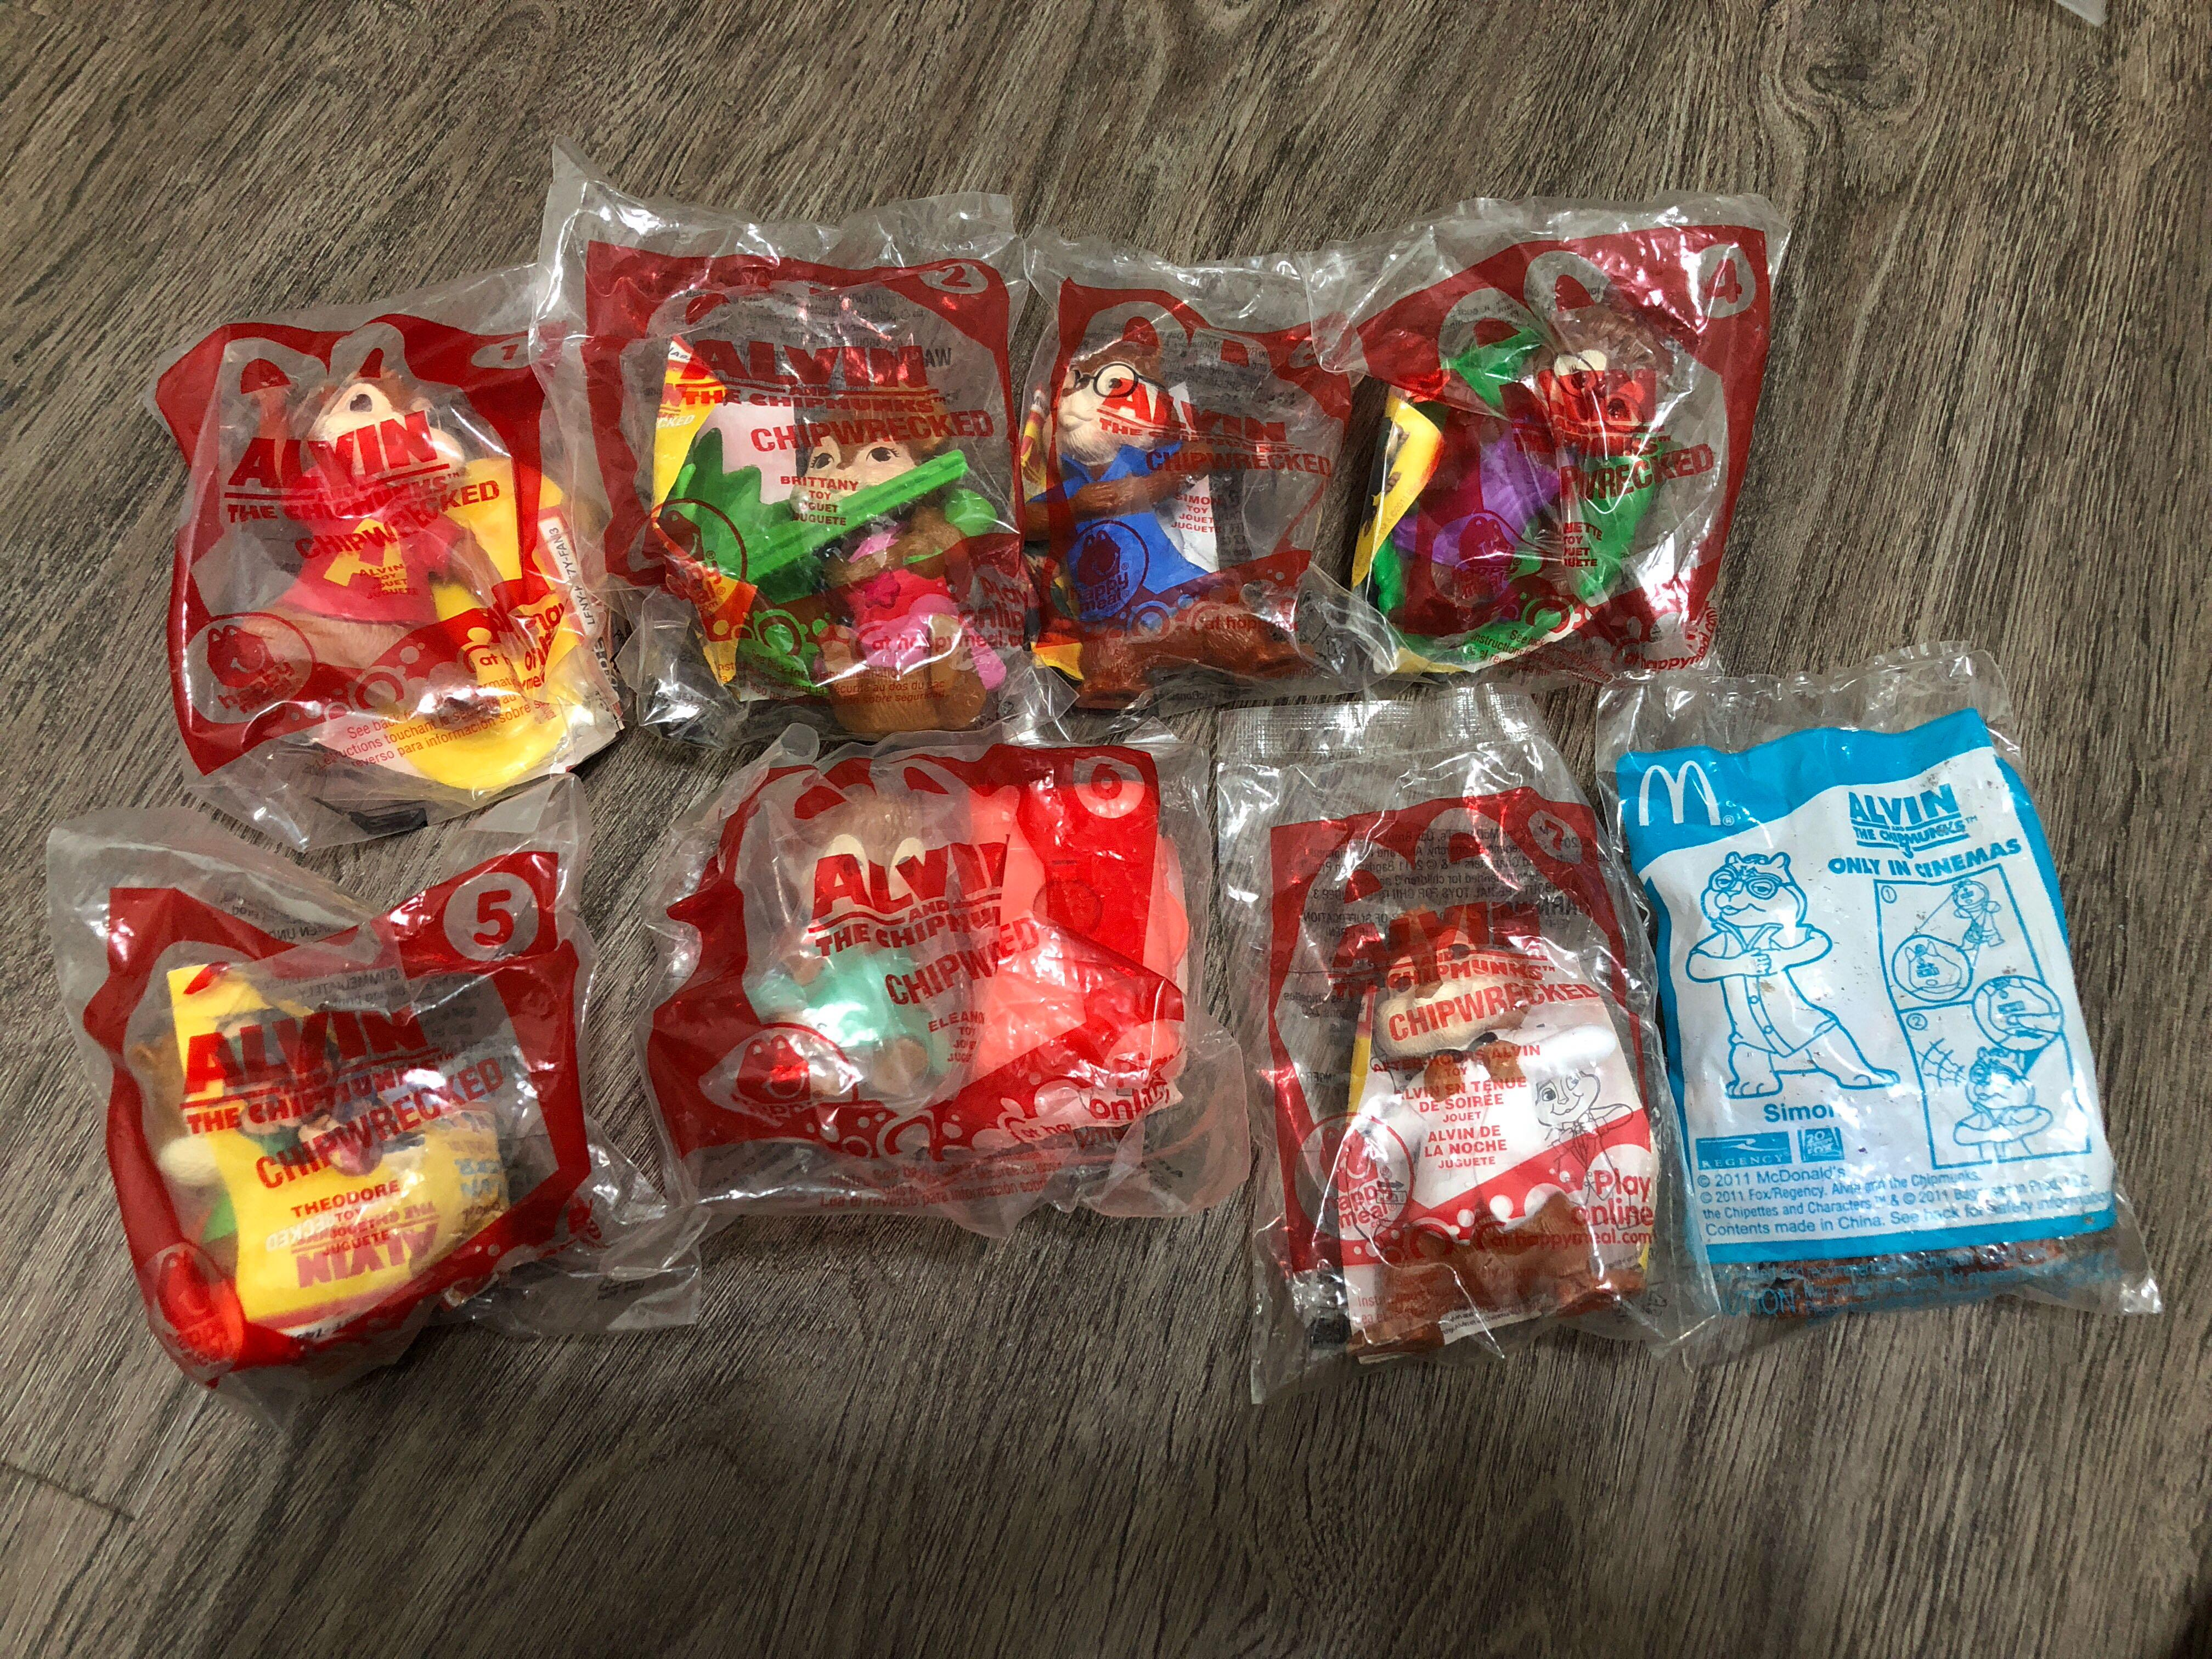 Alvin And The Chipmunks Chipwrecked Mcdonald S Happy Meal Toys Lot Toys Games Others On Carousell